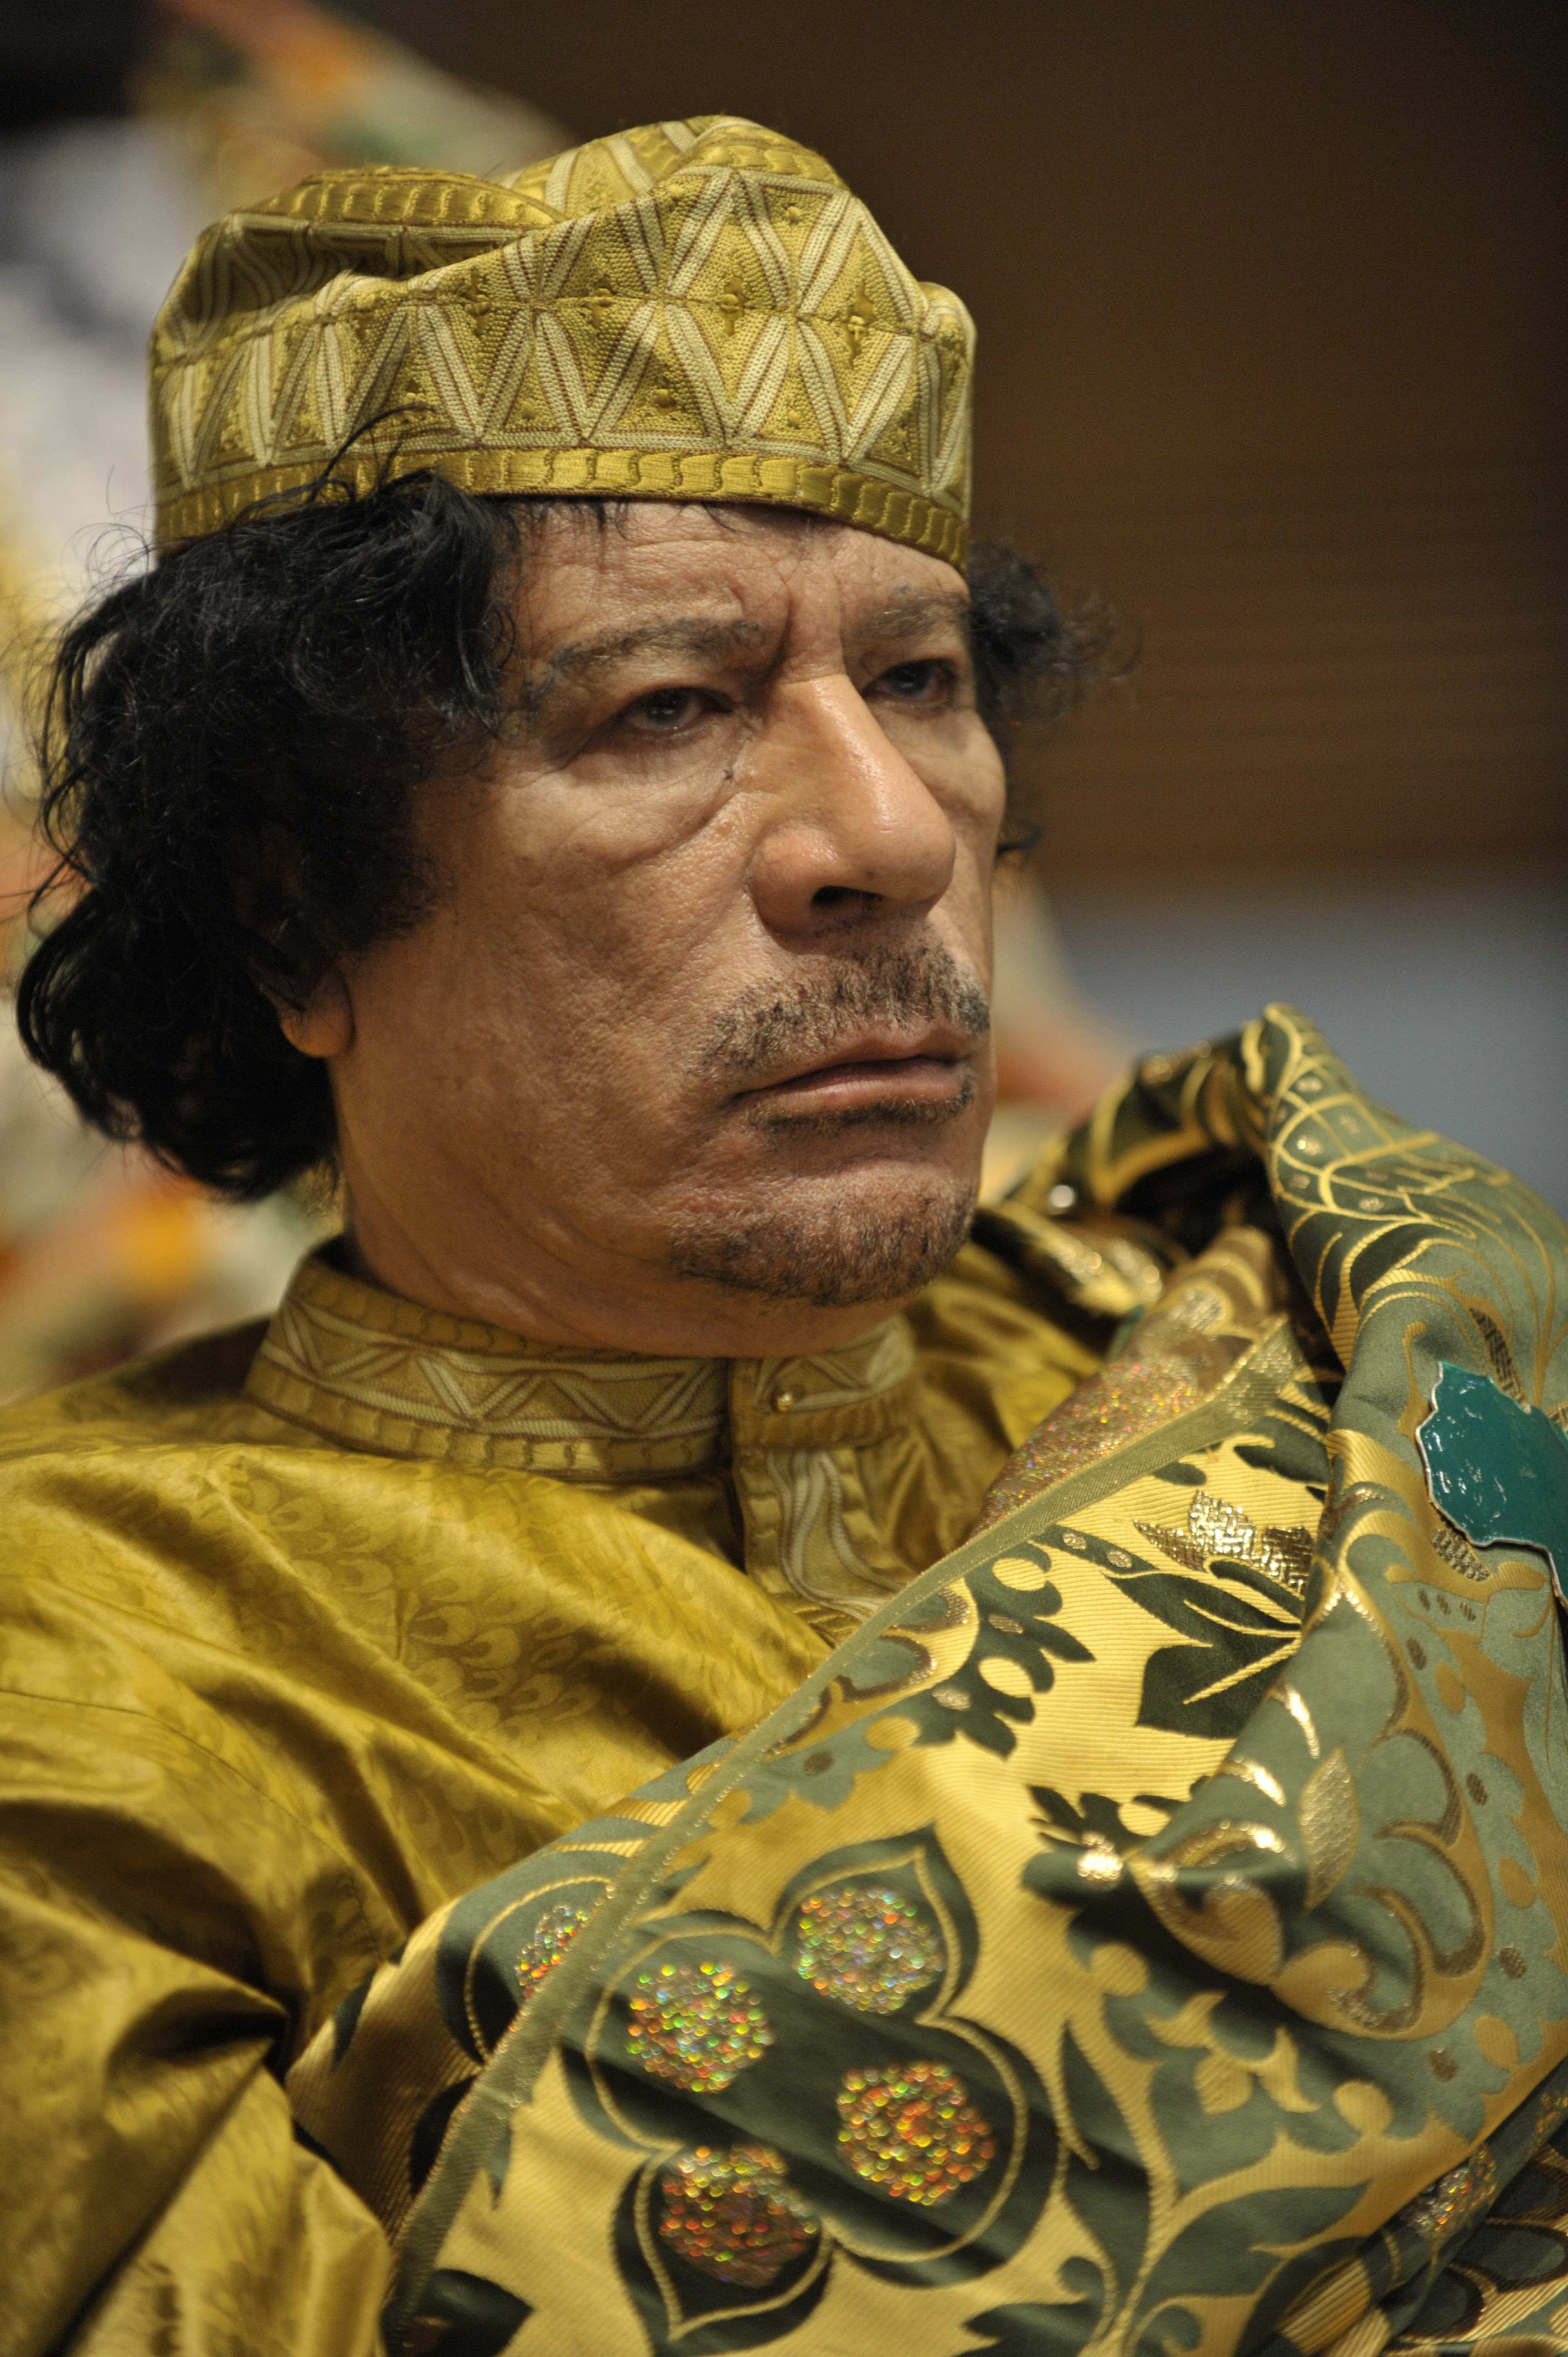 http://upload.wikimedia.org/wikipedia/commons/3/36/Muammar_al-Gaddafi_at_the_AU_summit.jpg